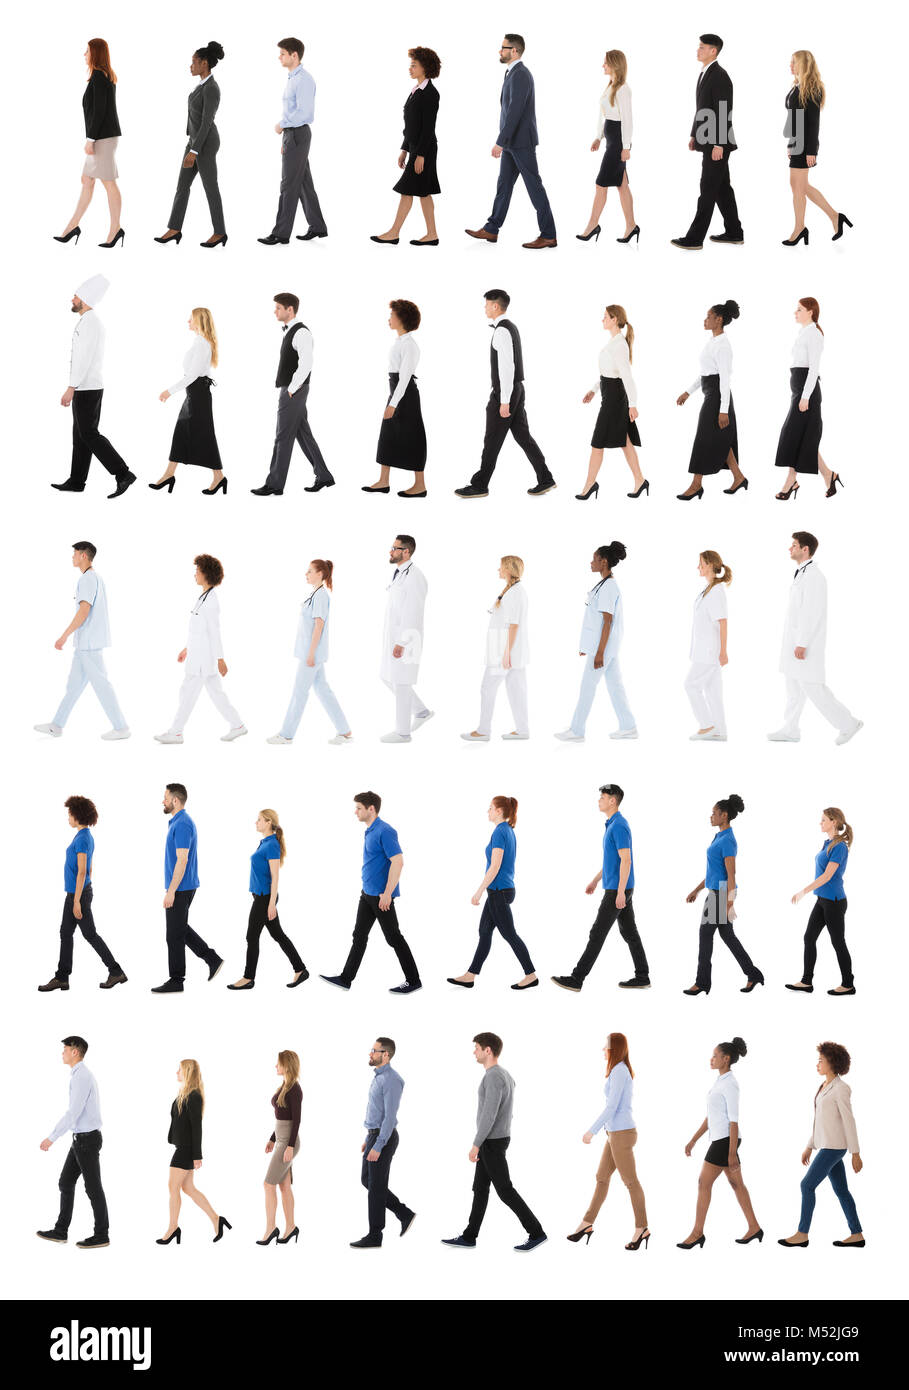 People Occupations Jobs And Community At: Group Of People Different Occupations Stock Photos & Group